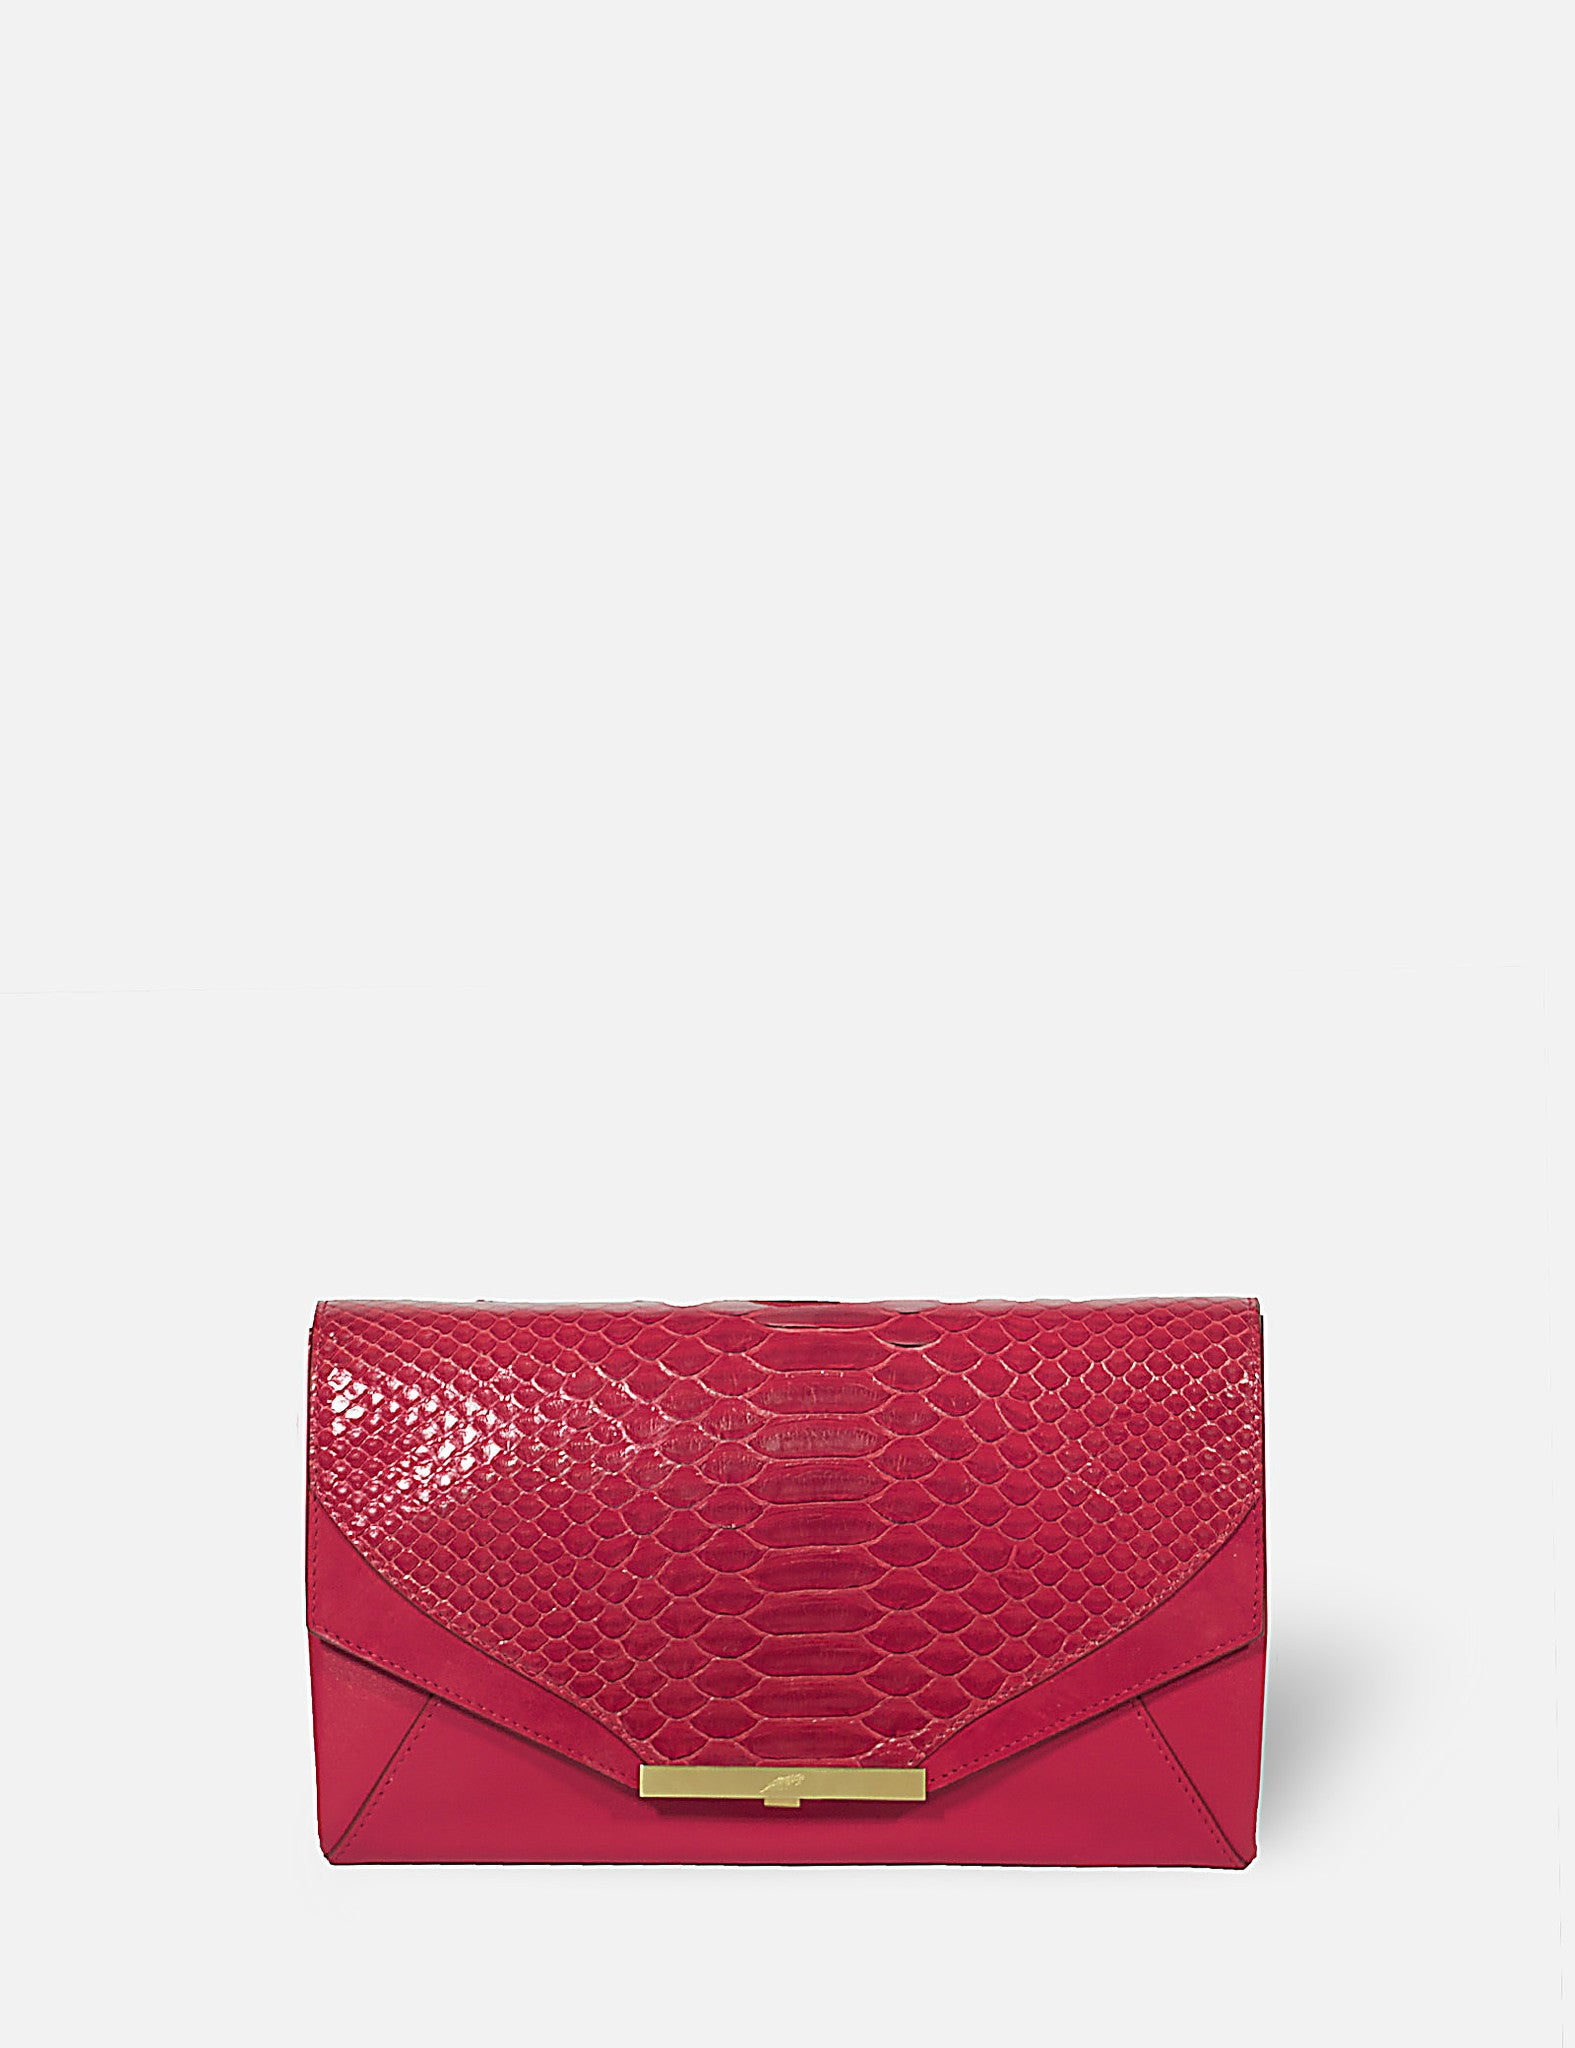 Khirma New York Unique Luxury Designer Exotic Watersnake Python Skin Envelope Clutch Purse. Removable chain for the perfect evening clutch. One inner pocket and six card slots. Red.